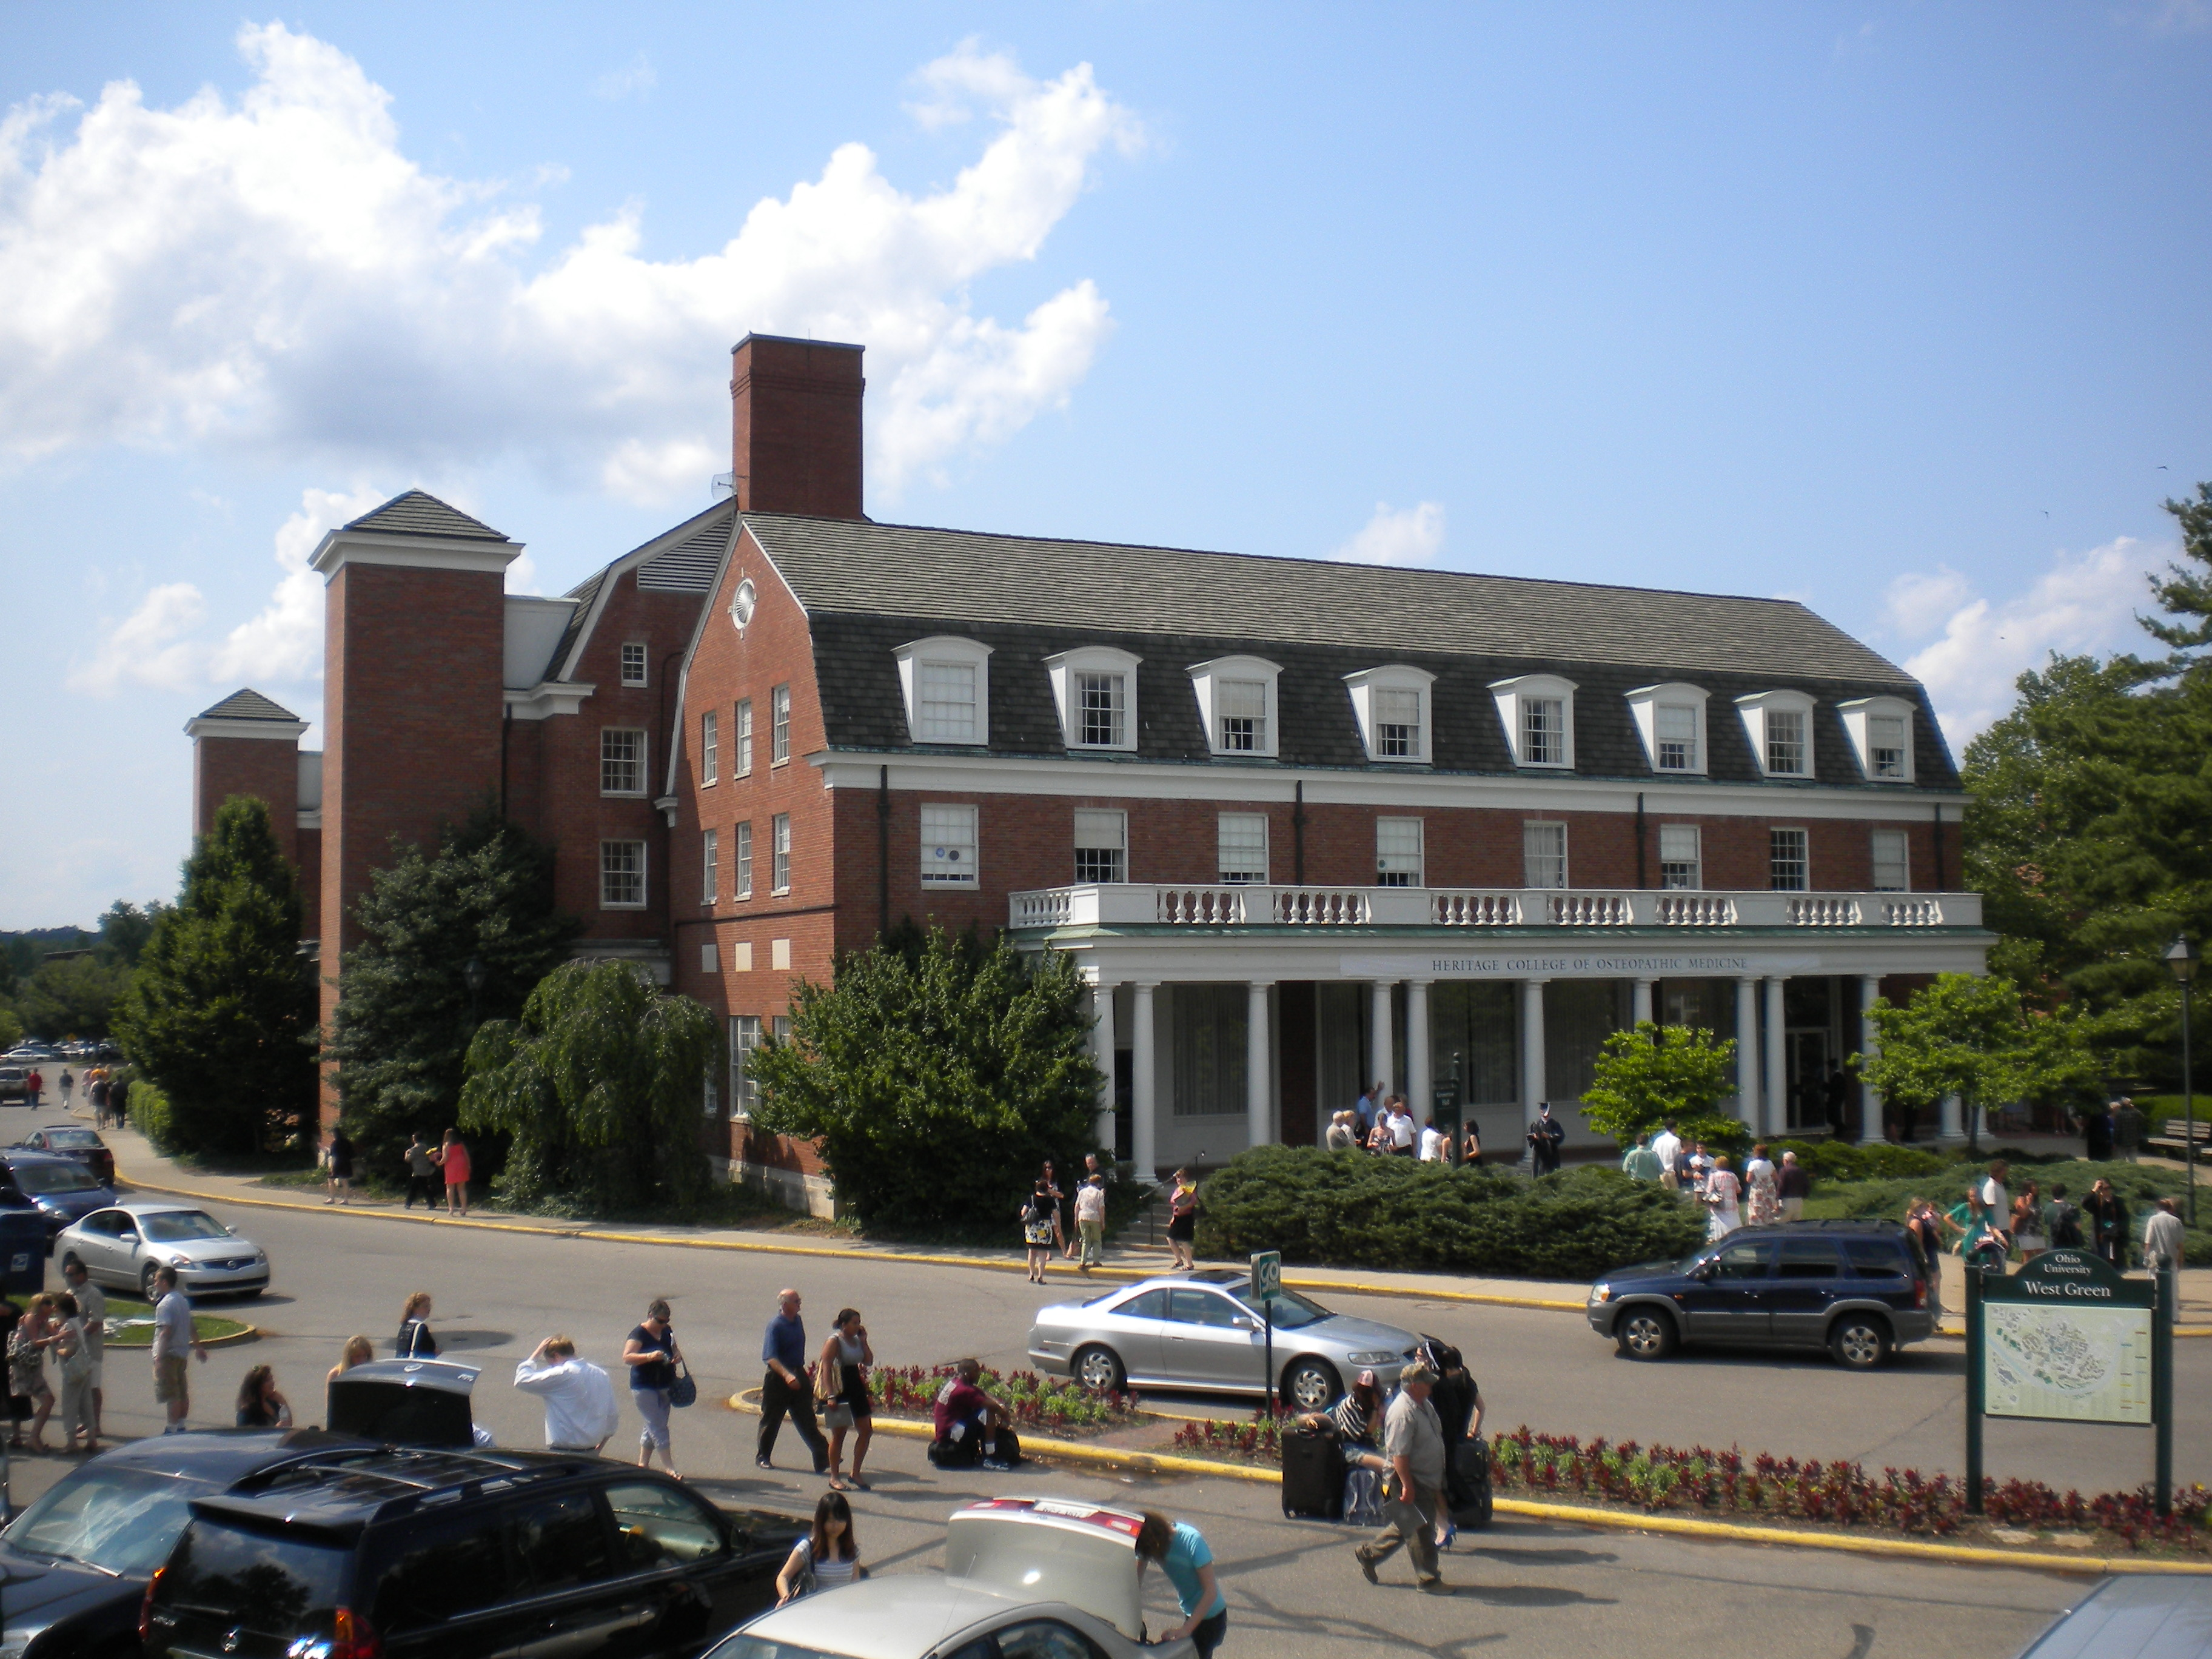 Heritage College of Osteopathic Medicine - Wikipedia